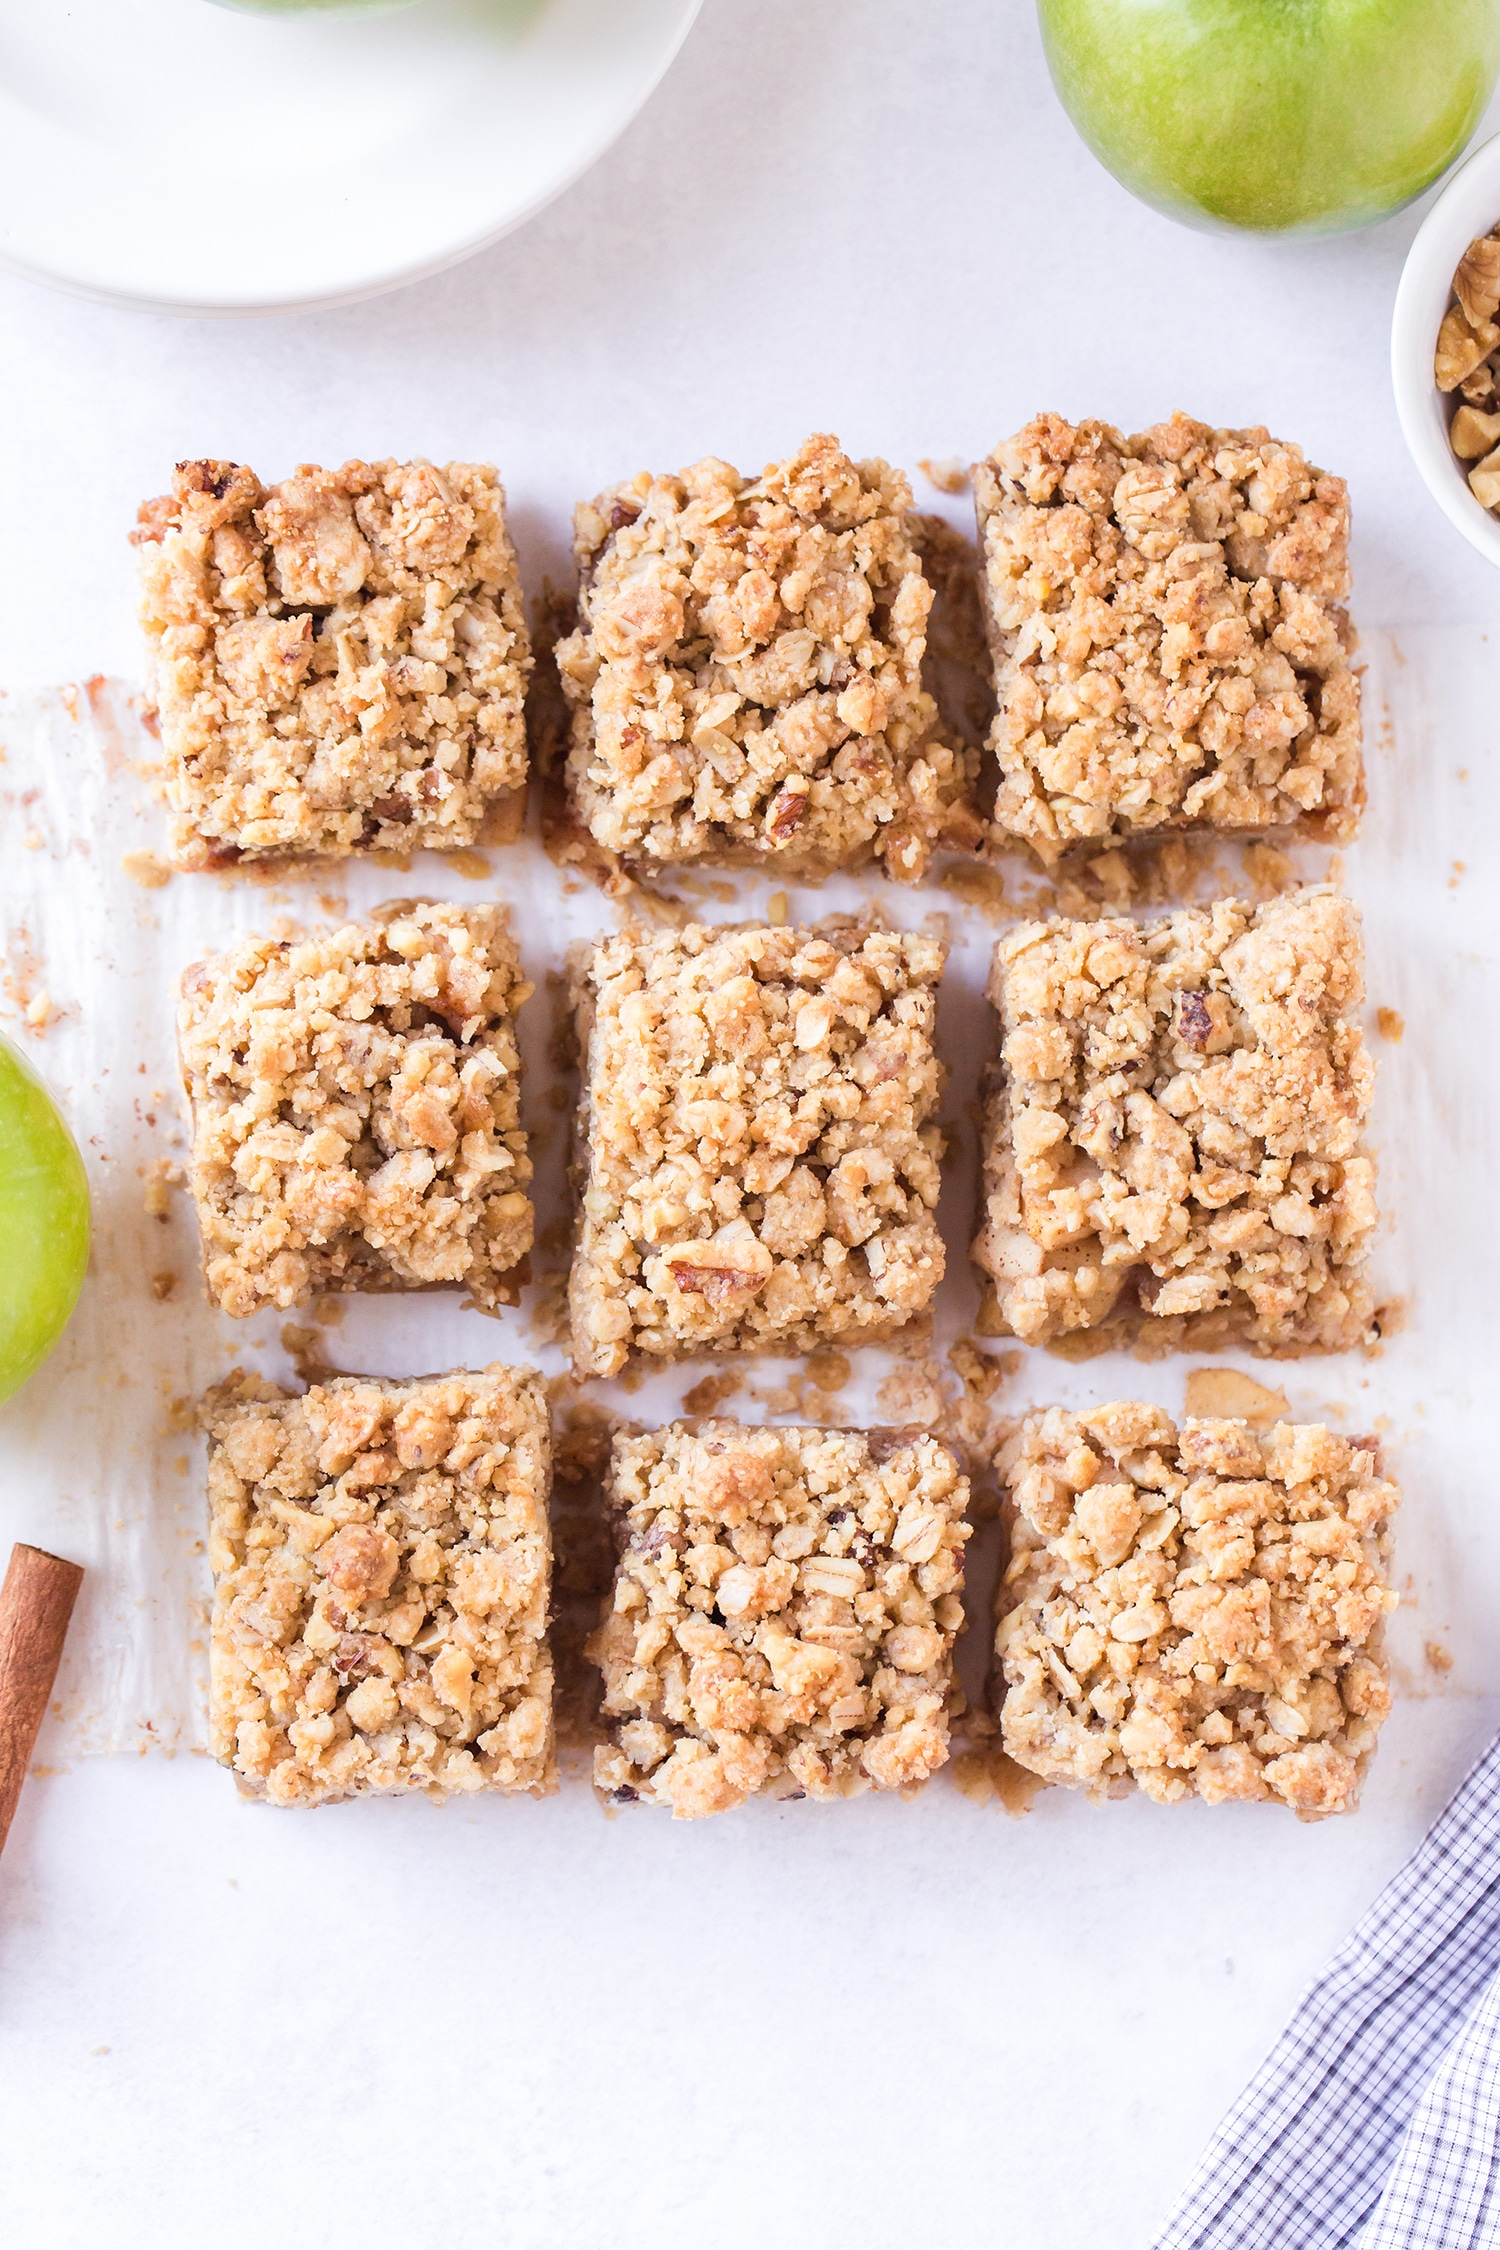 Sliced apple pie bars on white marble background surrounded by green apples and cinnamon sticks